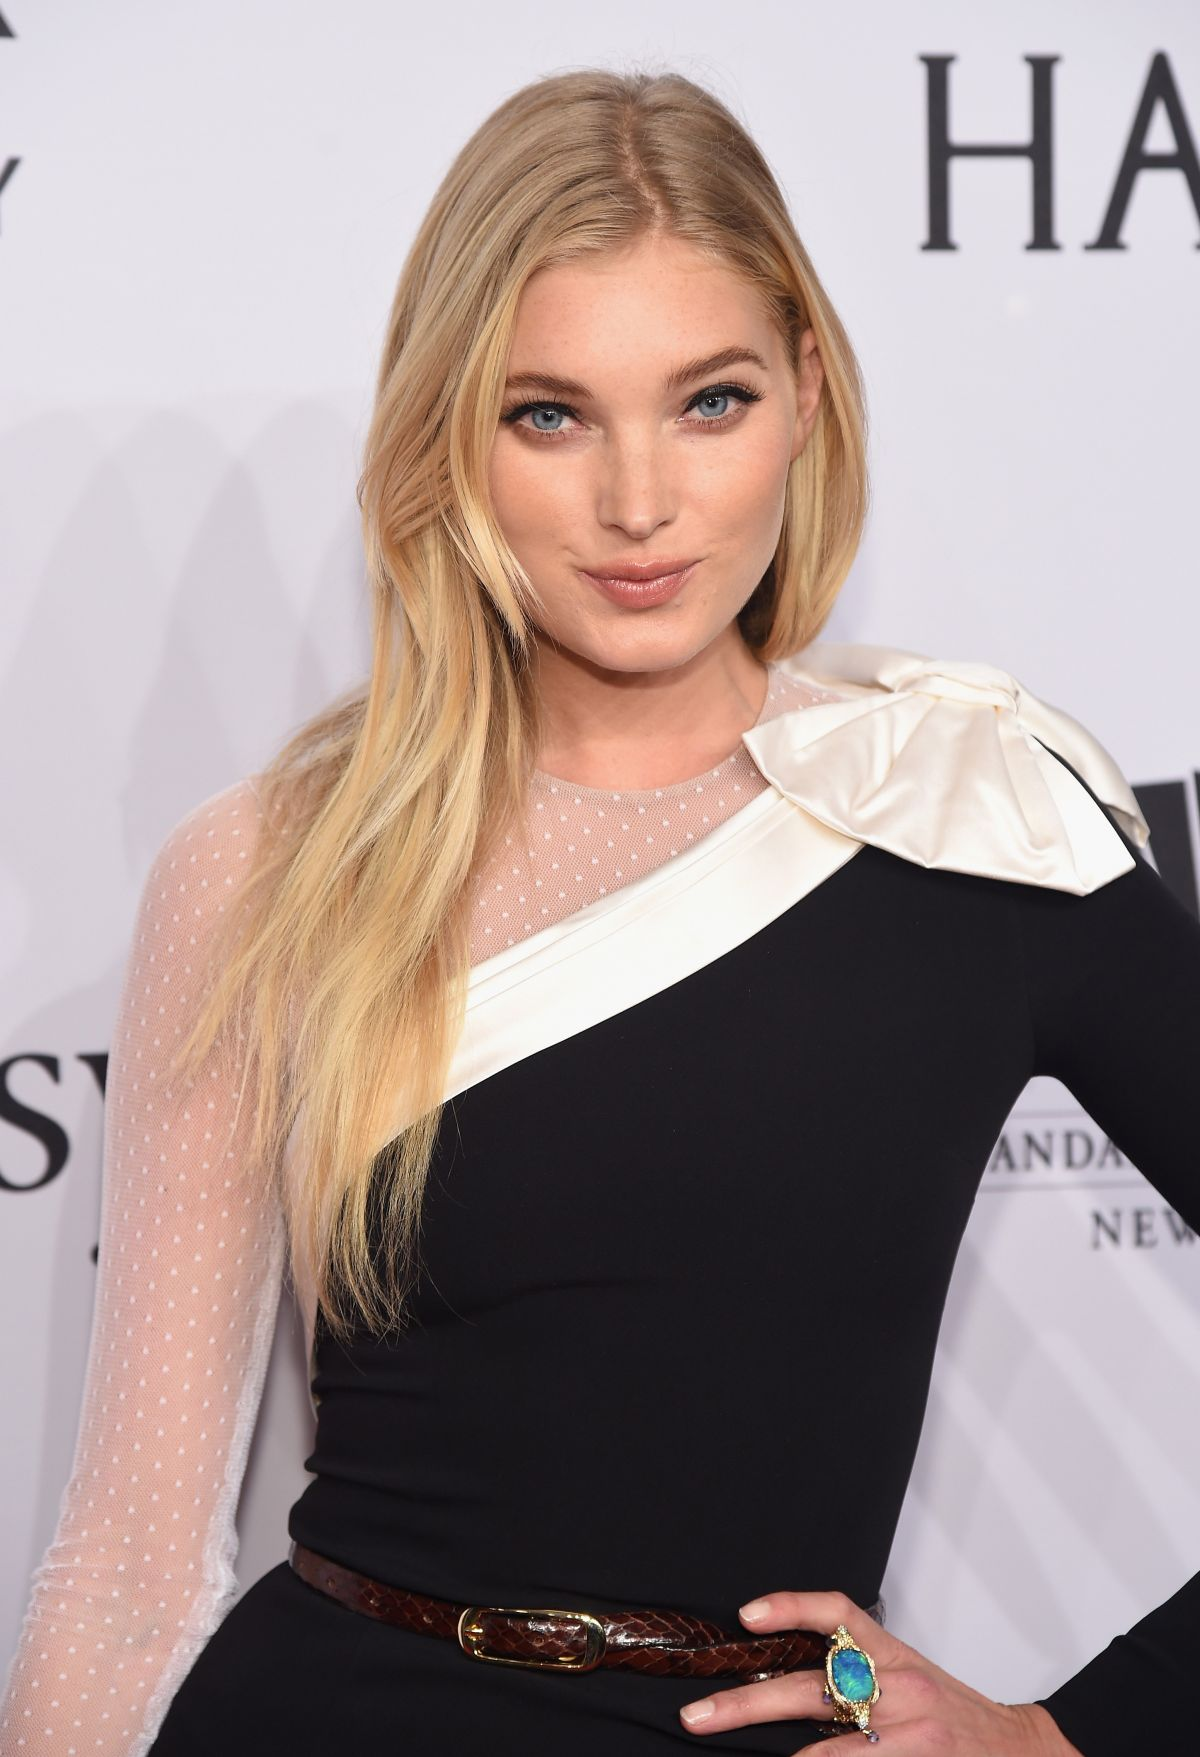 ELSA HOSK at Amfar's 23rd Cinema Against Aids Gala in Antibes 05/19/2016